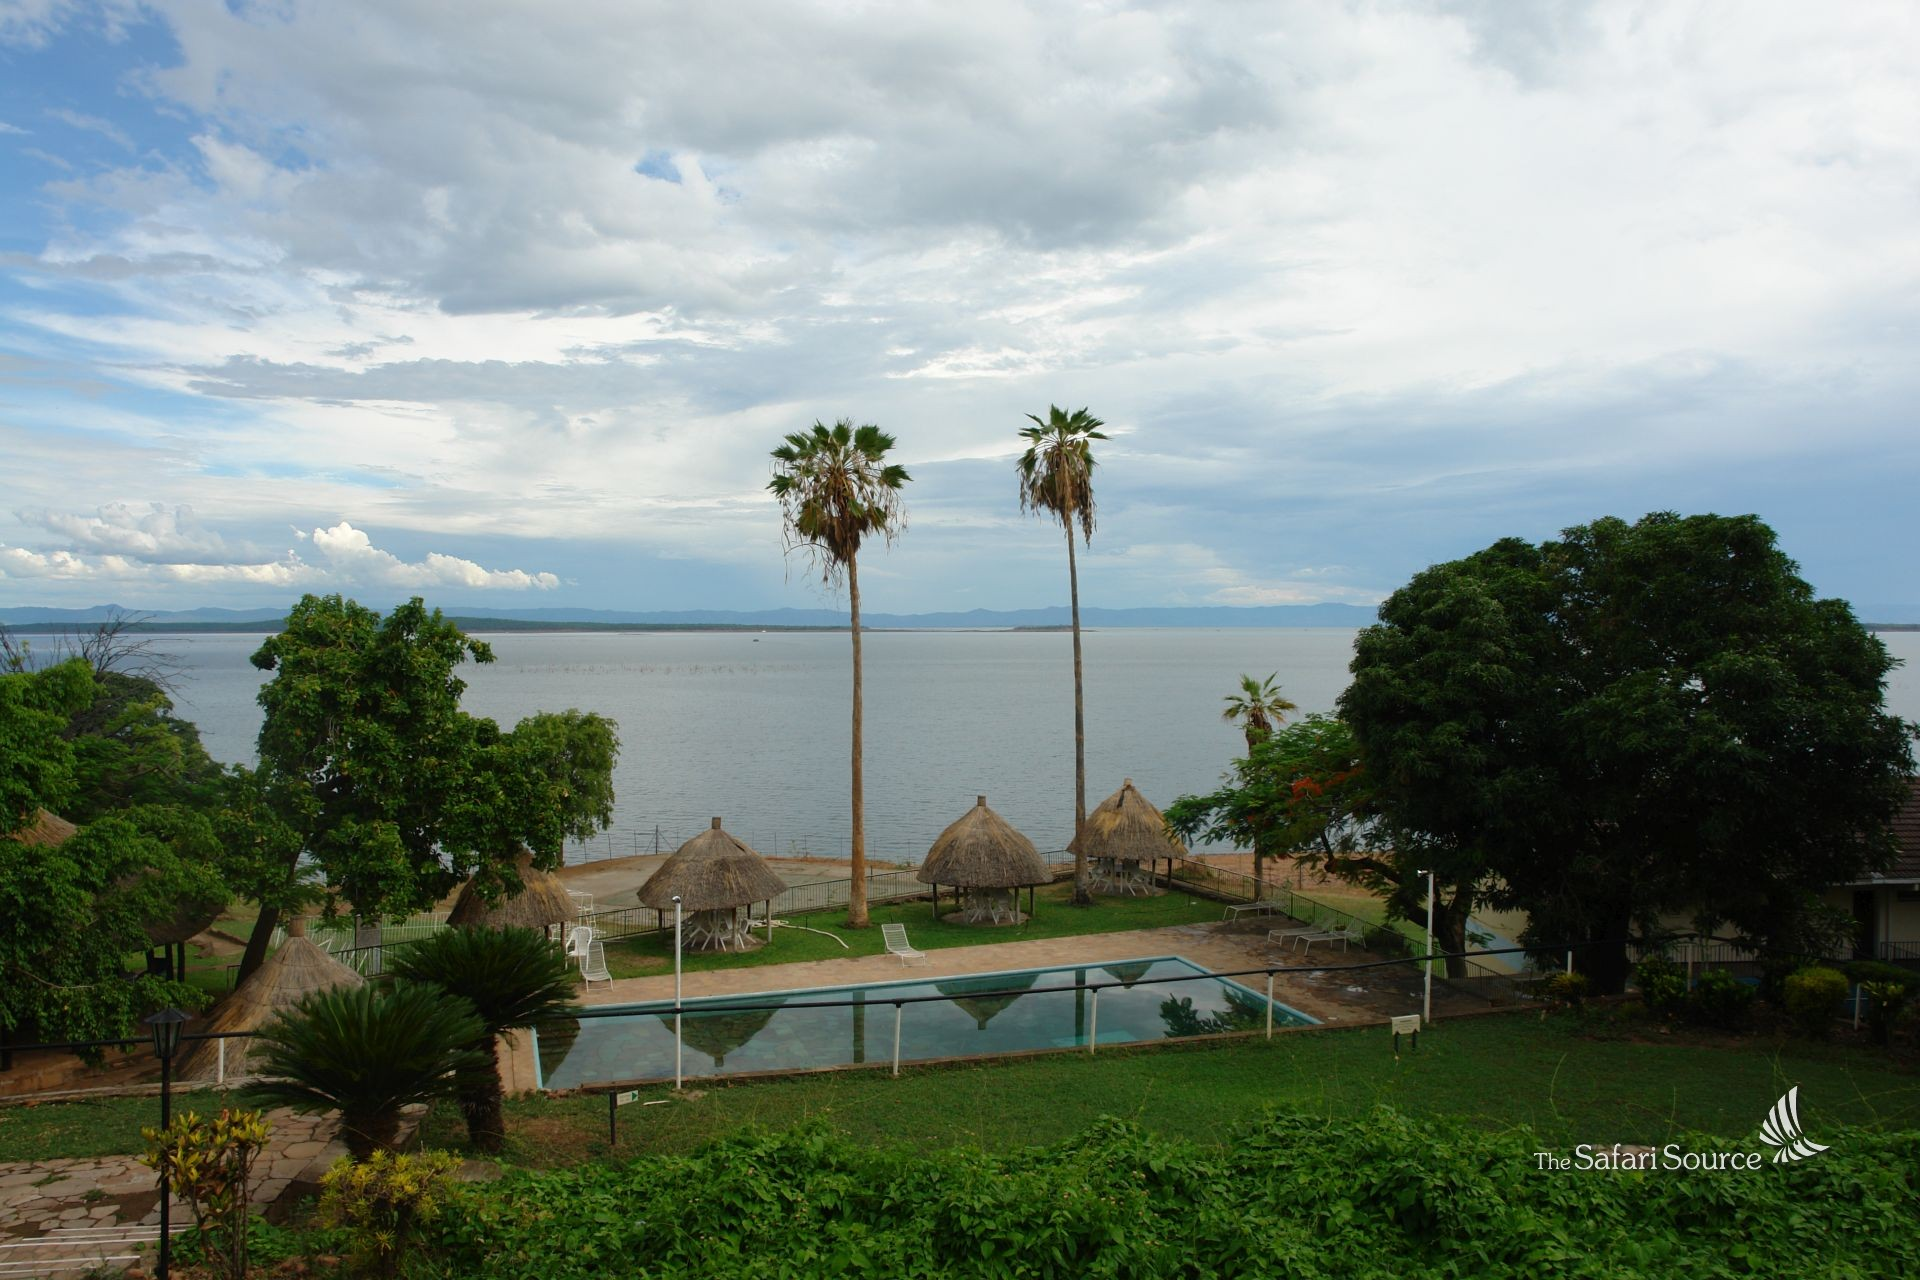 Cutty Sark at Lake Kariba offers budget hotel accommodation in Kariba, Zimbabwe.